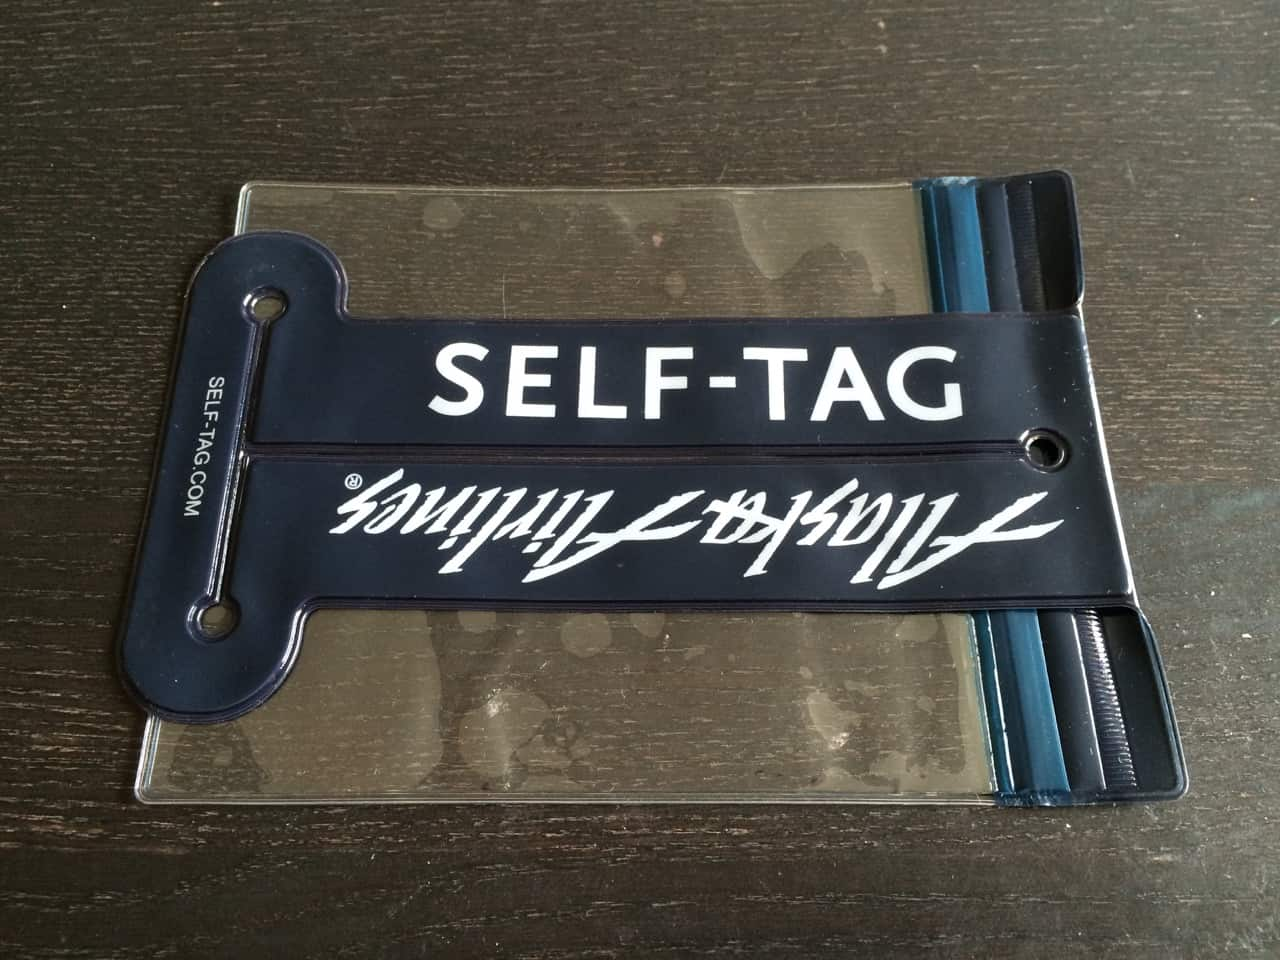 5 000 Free Alaska Airlines Miles For Self Tag Online